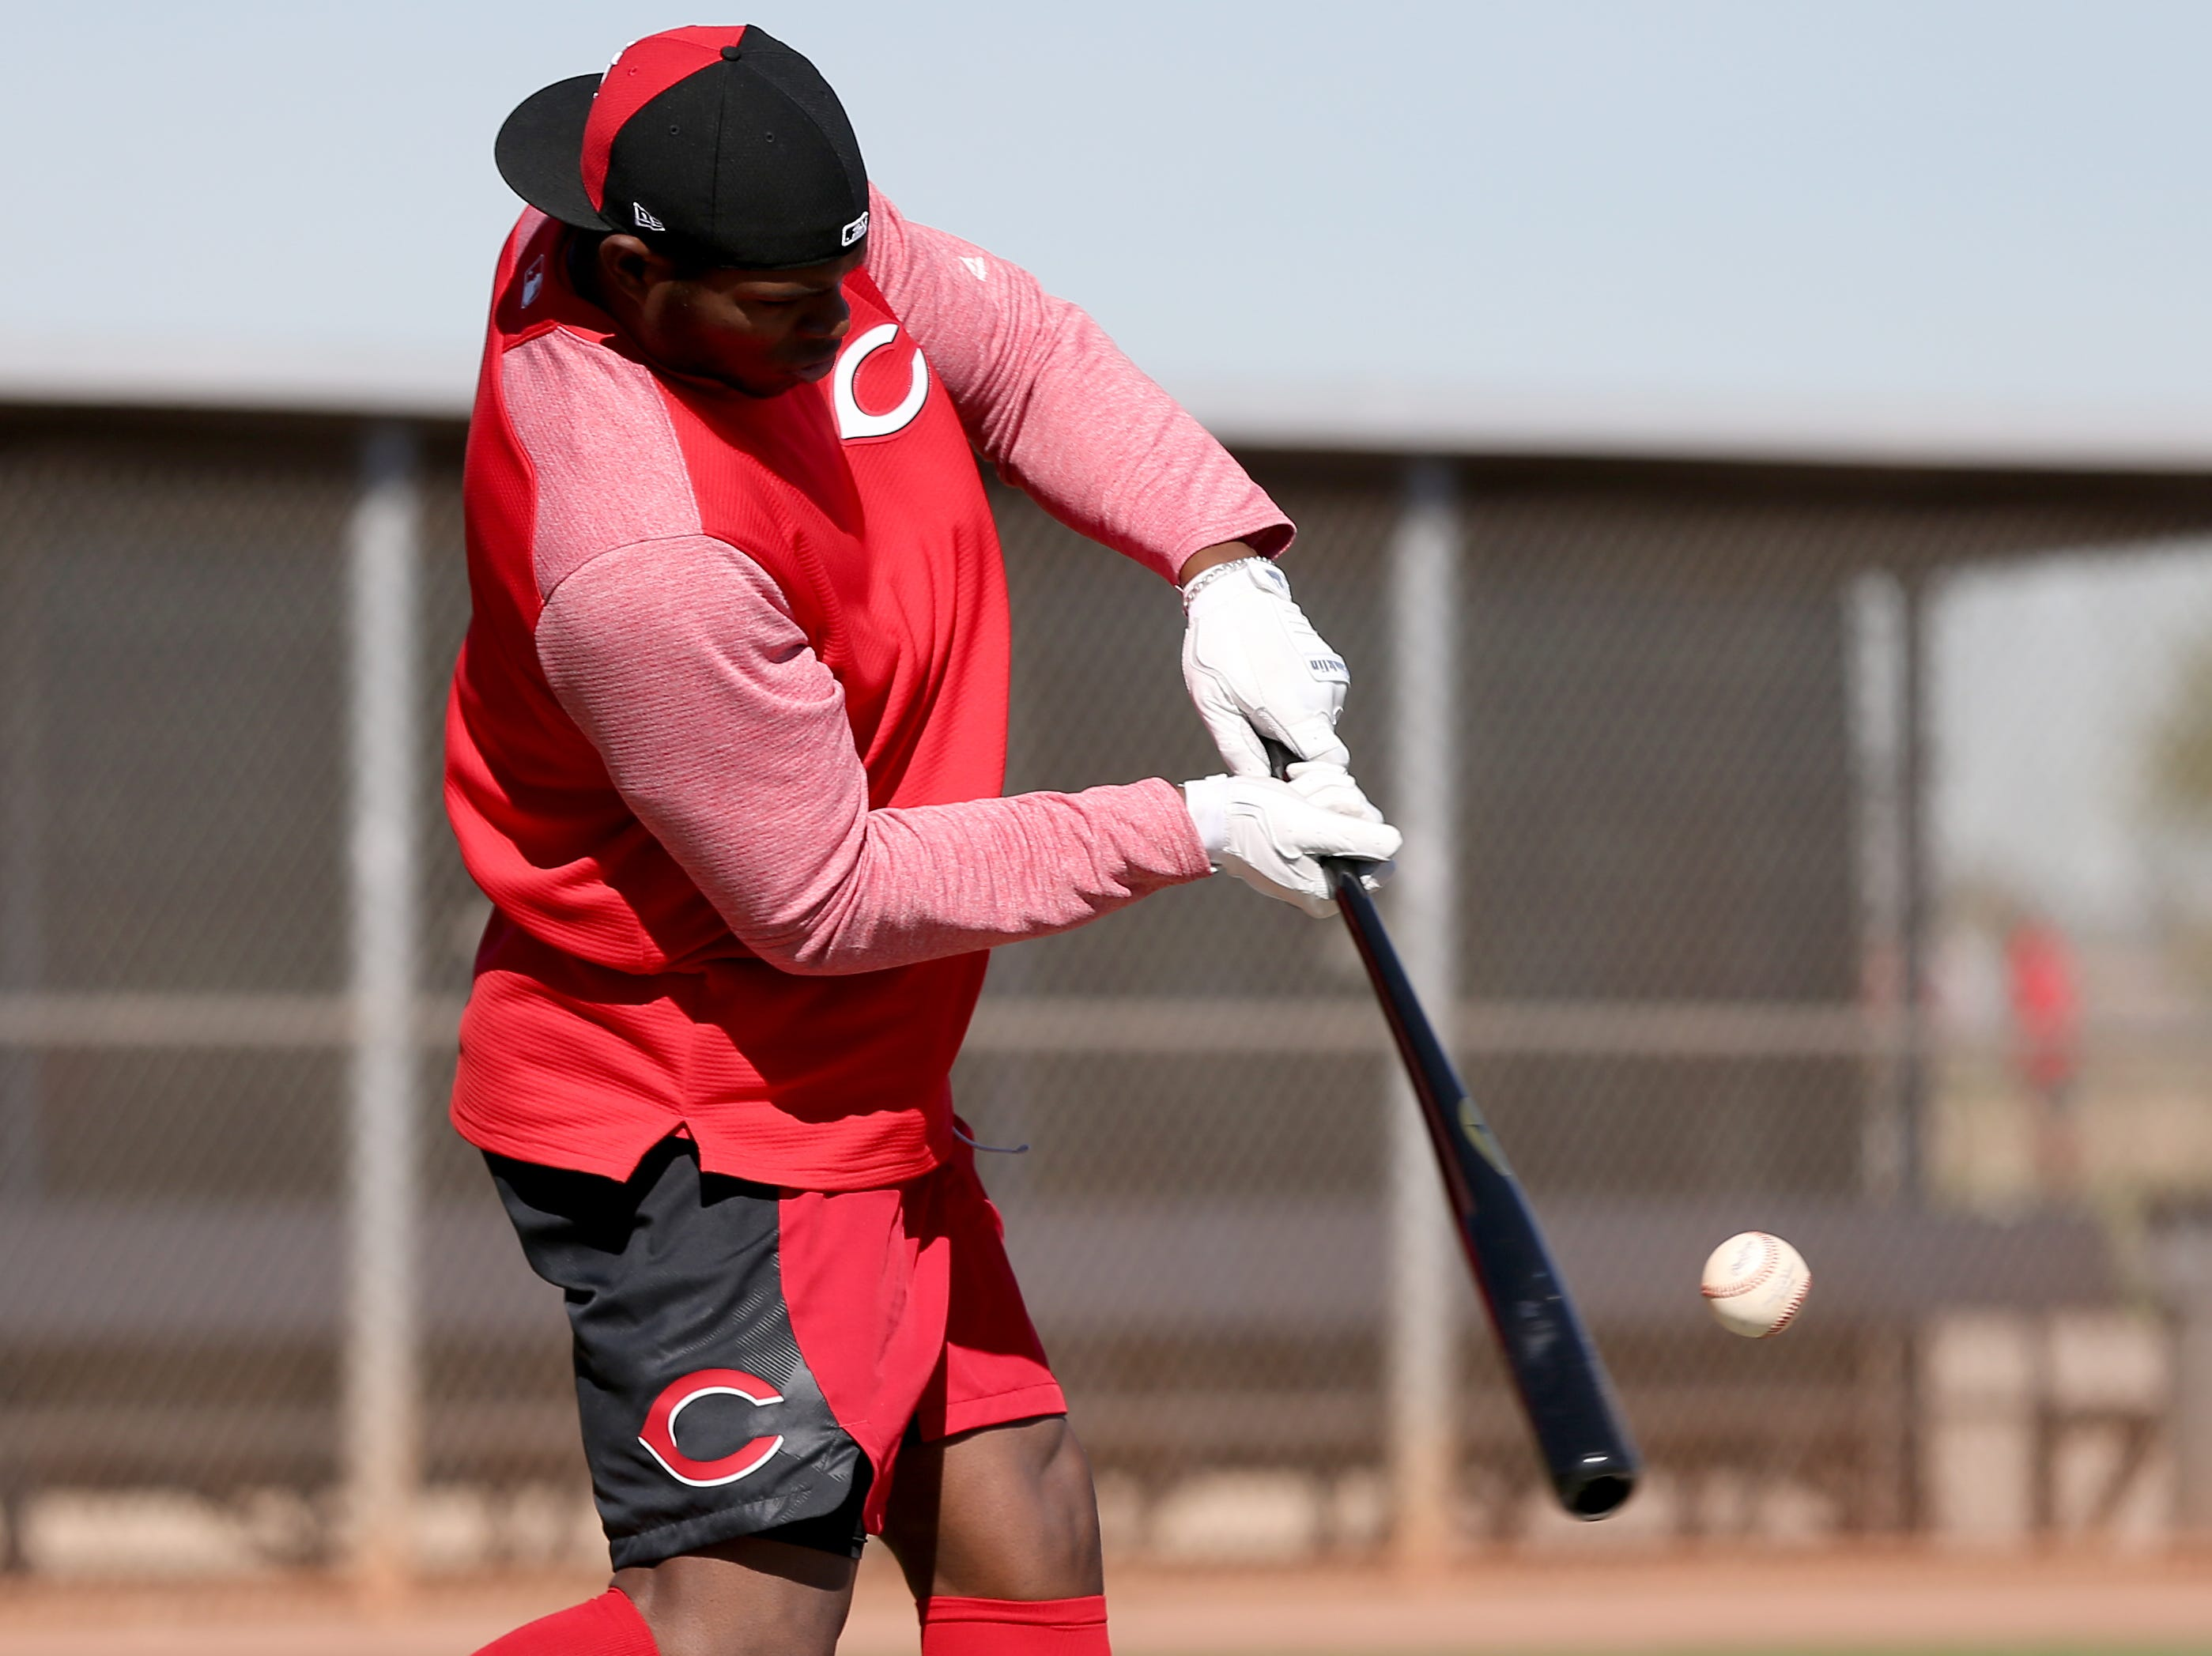 Cincinnati Reds outfielder Yasiel Puig swings during batting practice on report day for pitchers and catchers, Tuesday, Feb. 12, 2019, at the Cincinnati Reds spring training facility in Goodyear, Arizona.